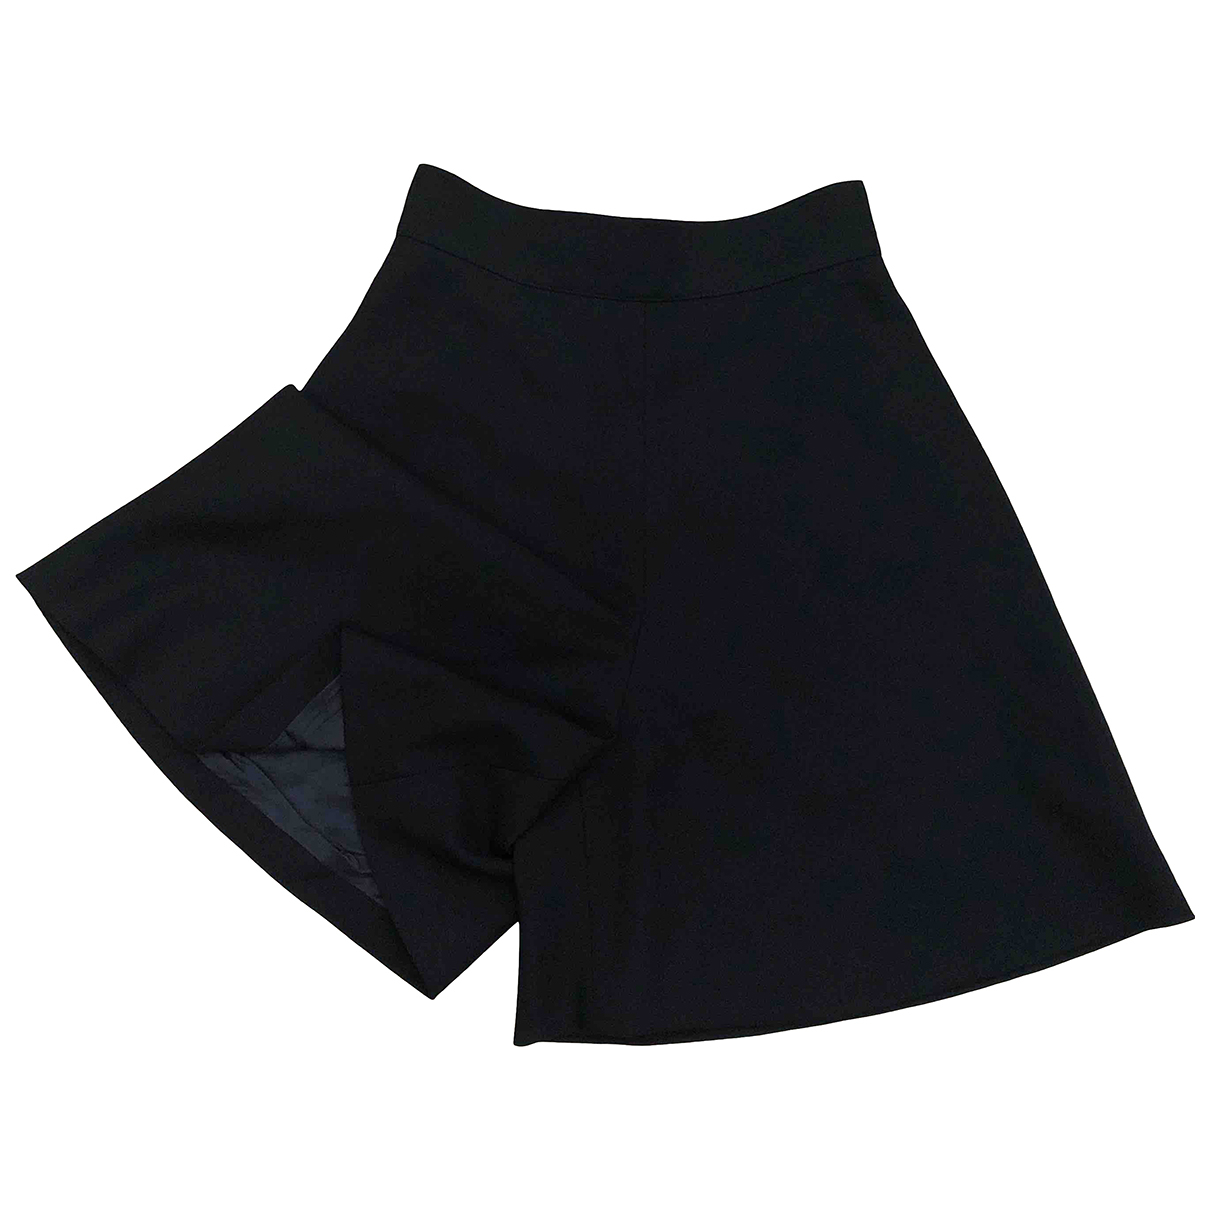 Gianni Versace \N Black Cotton Shorts for Women S International